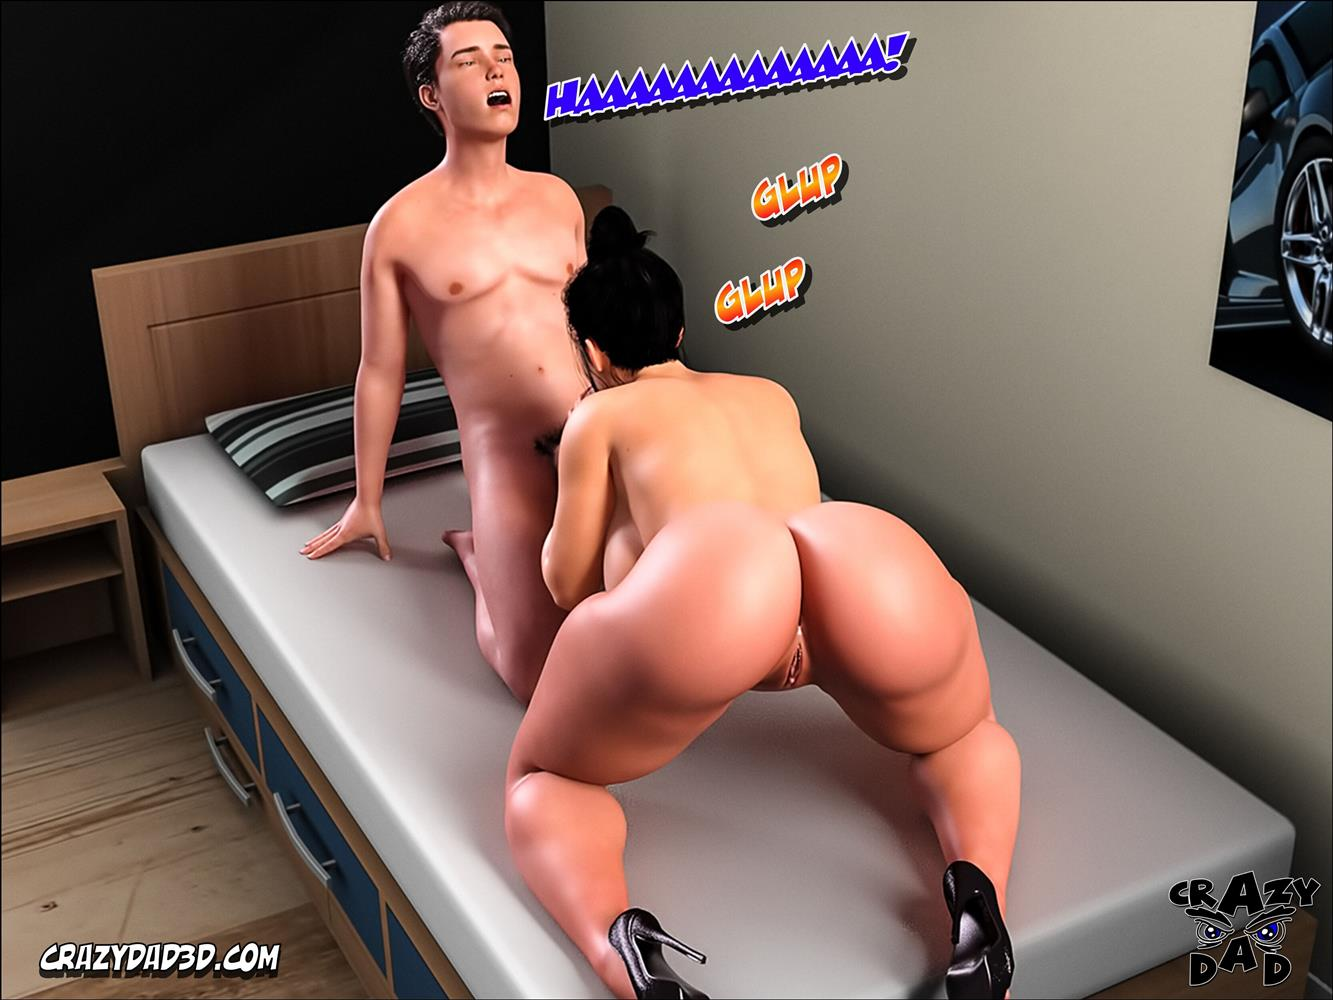 Mom's Help 21 [Crazy Dad 3D] - Foto 41